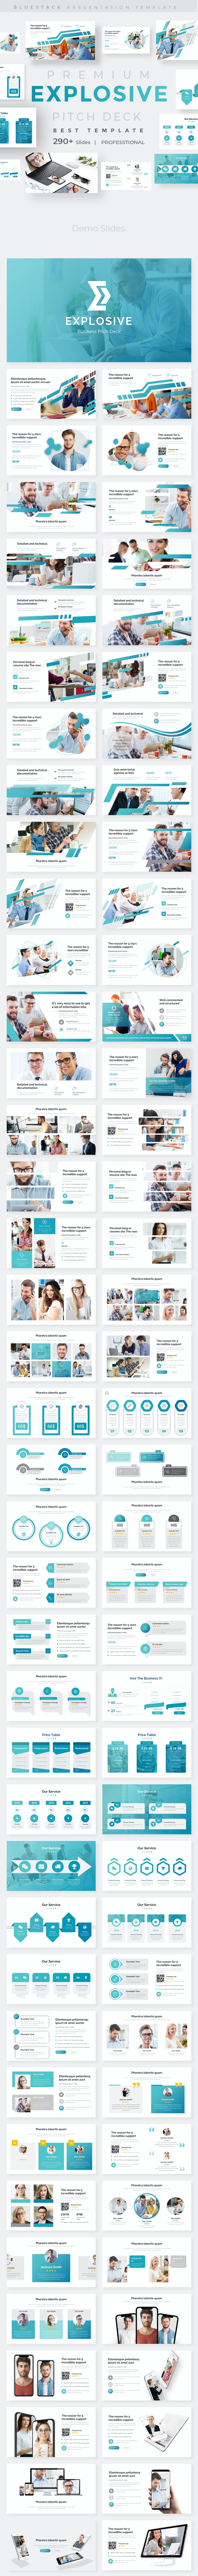 Explosive Business Pitch Deck Powerpoint Template - Business PowerPoint Templates